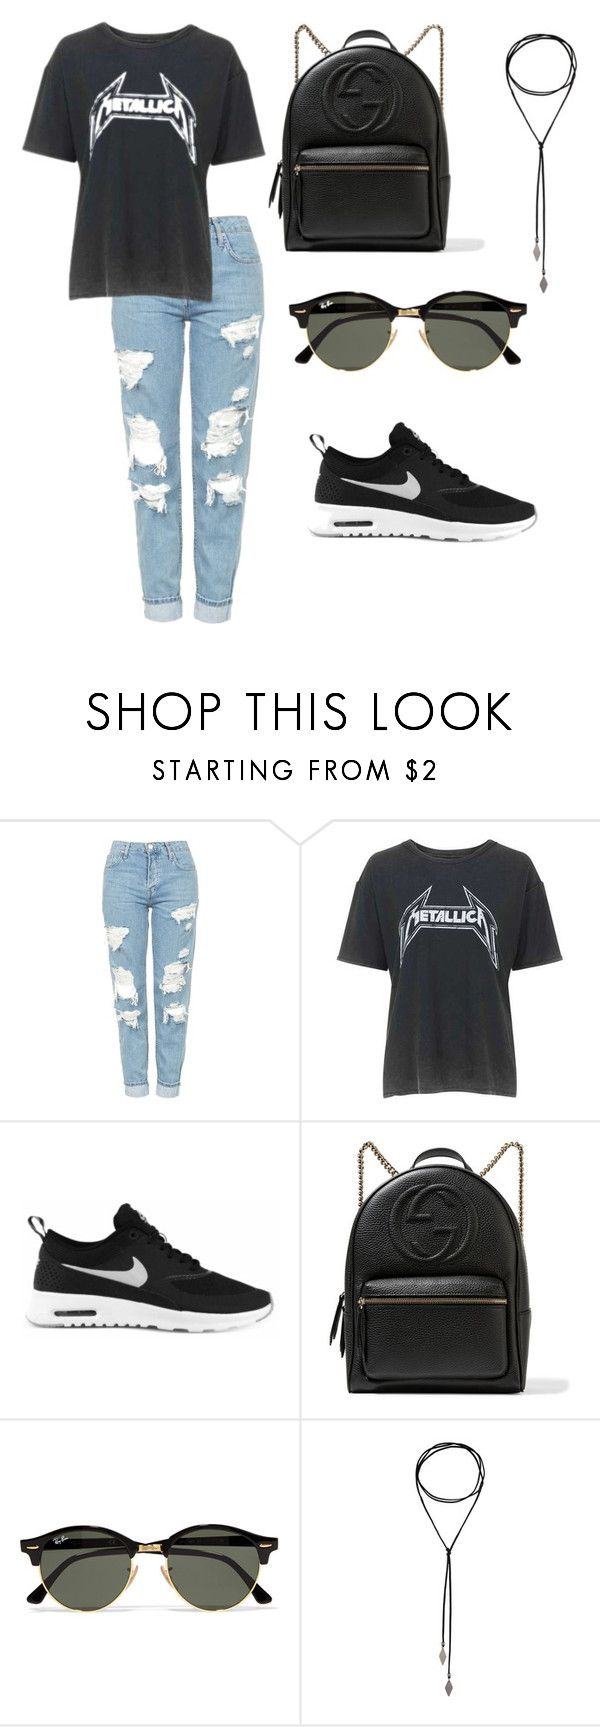 """Untitled #30"" by alexa-str on Polyvore featuring Topshop, NIKE, Gucci and Ray-Ban"